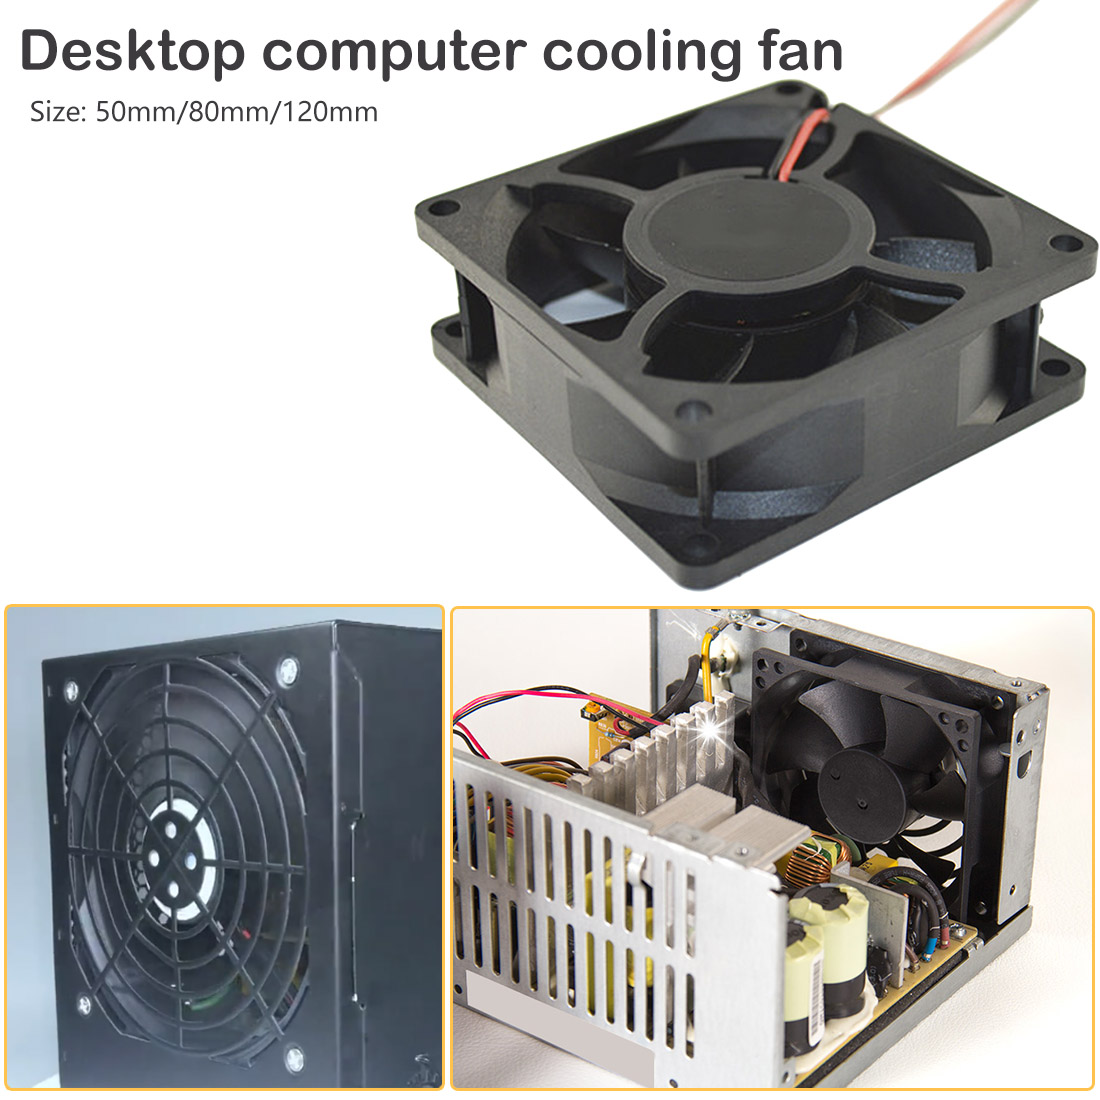 <font><b>12V</b></font> DC <font><b>fan</b></font> 2 Pin Connector Cooling <font><b>Fan</b></font> for Computer Case CPU Cooler Radiator Computer Accessories CPU Cooling <font><b>Fans</b></font> 50 80 <font><b>120</b></font> <font><b>mm</b></font> image